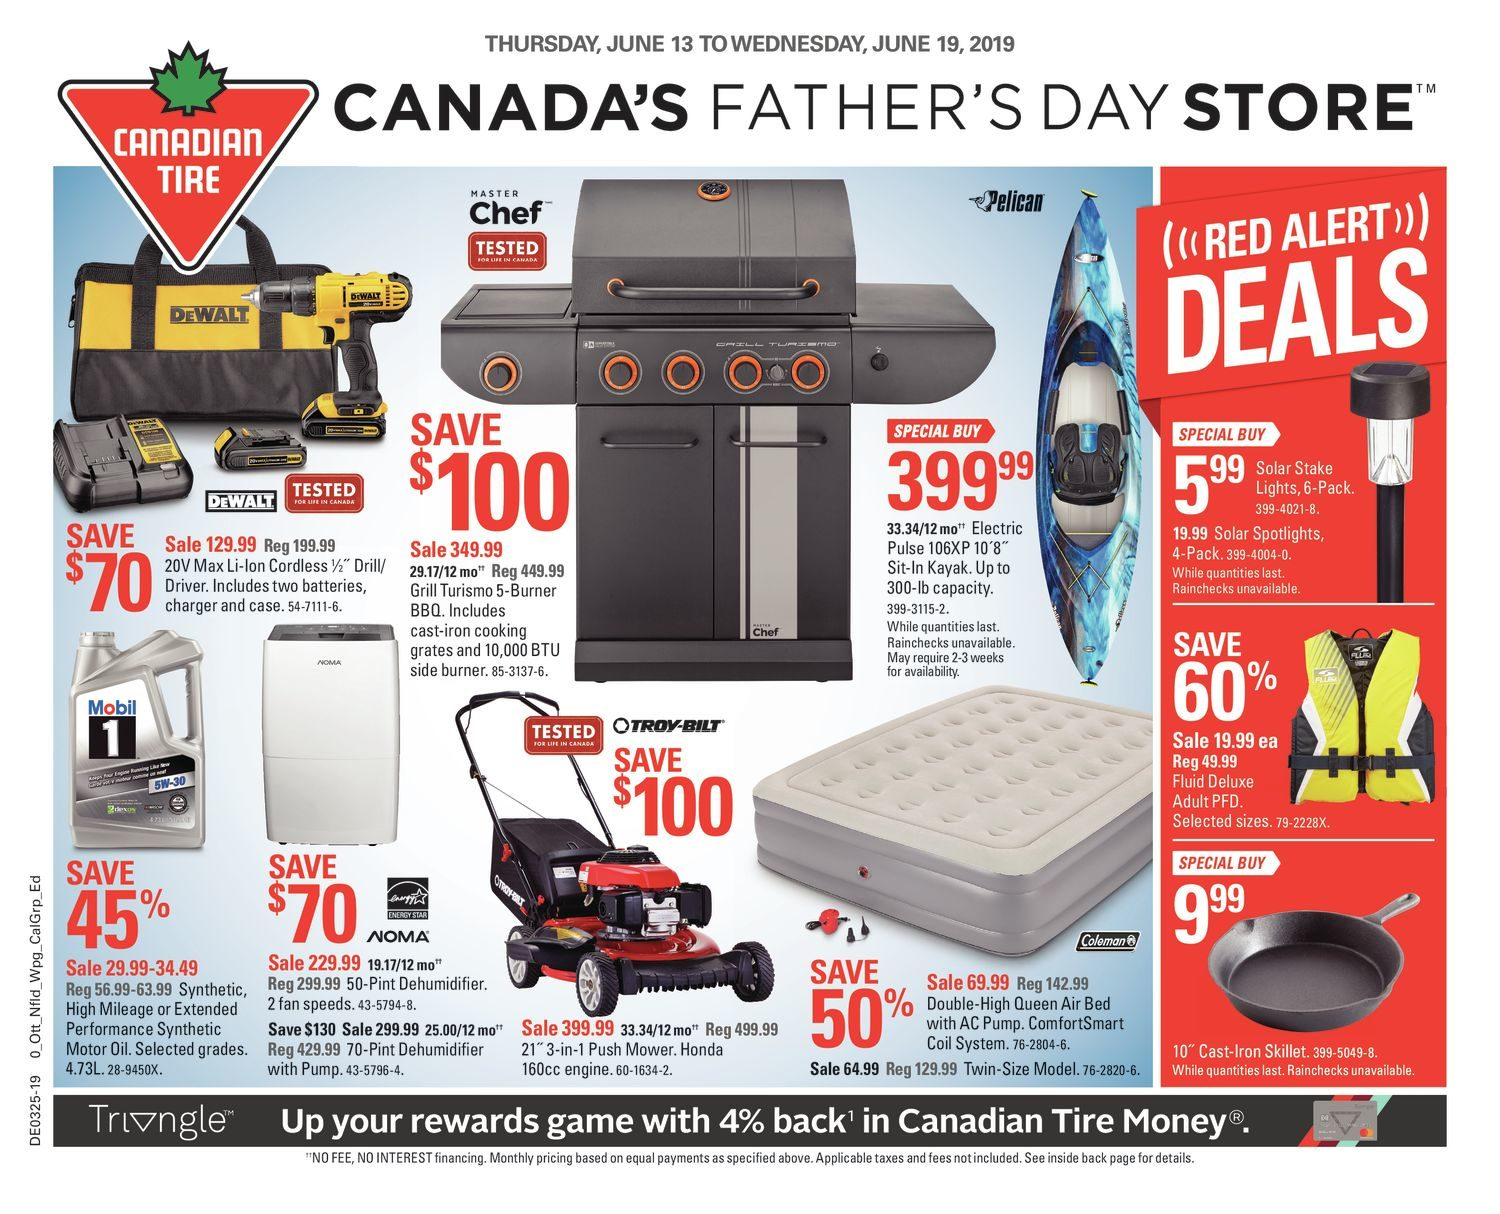 Weekly - Canada's Father's Day Store - Canadian Tire June 12 2019